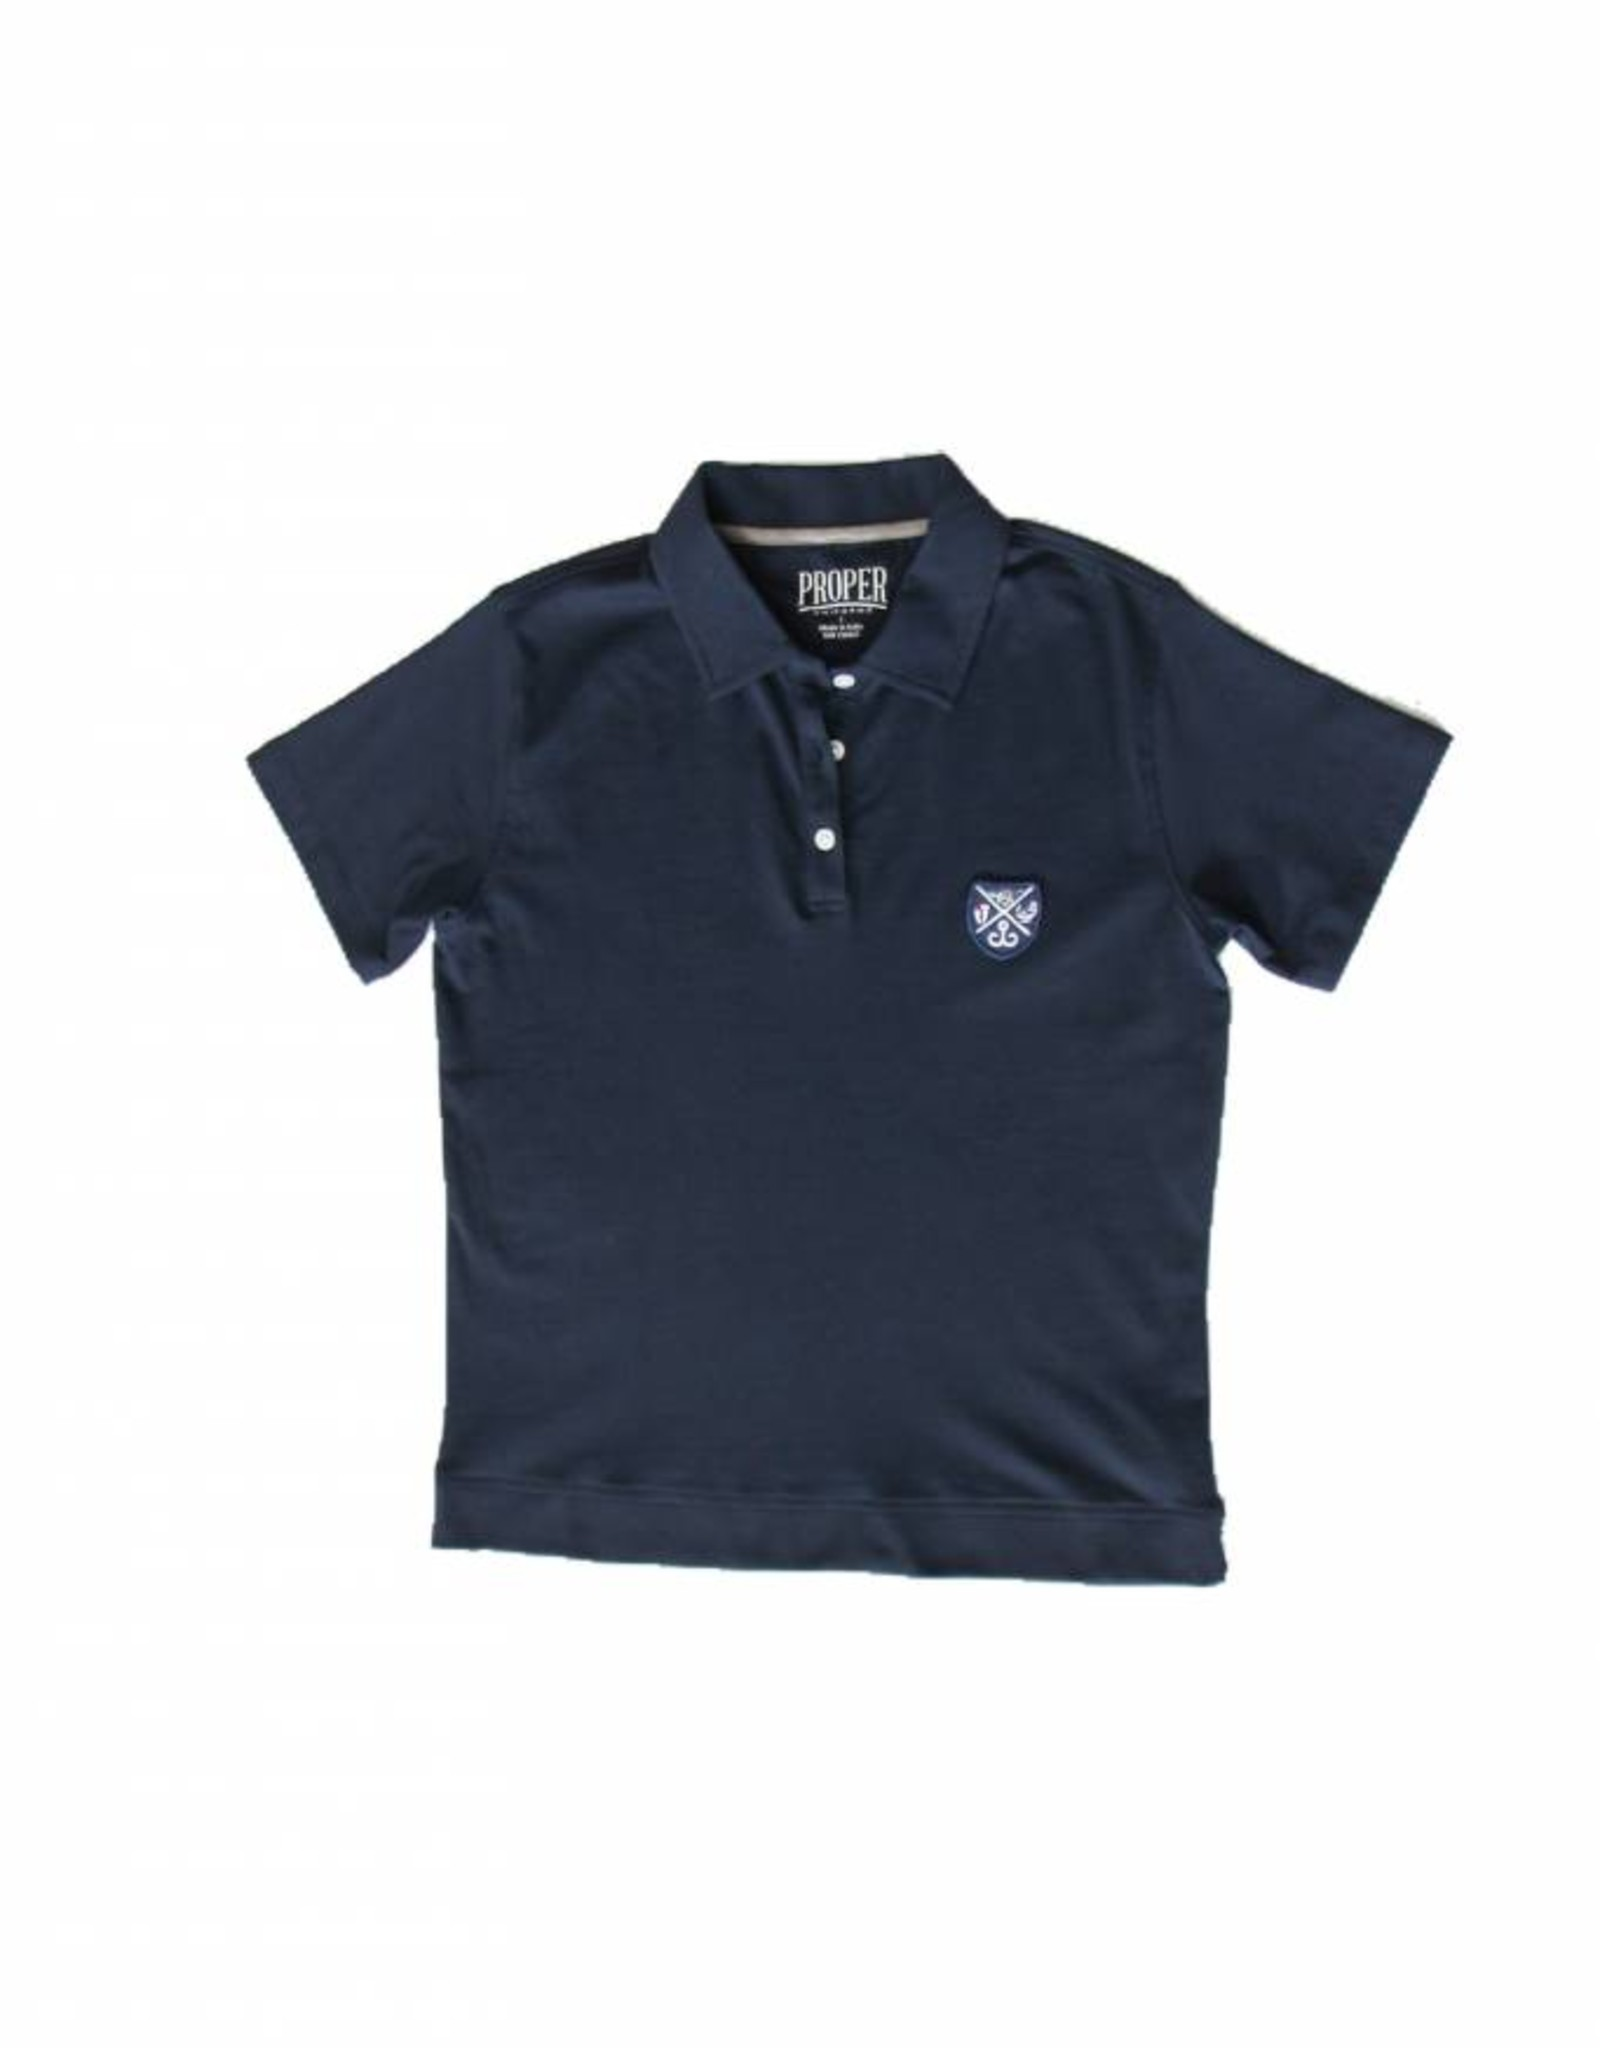 Proper Uniforms SHIRT-3 Button BANDED, Toddler